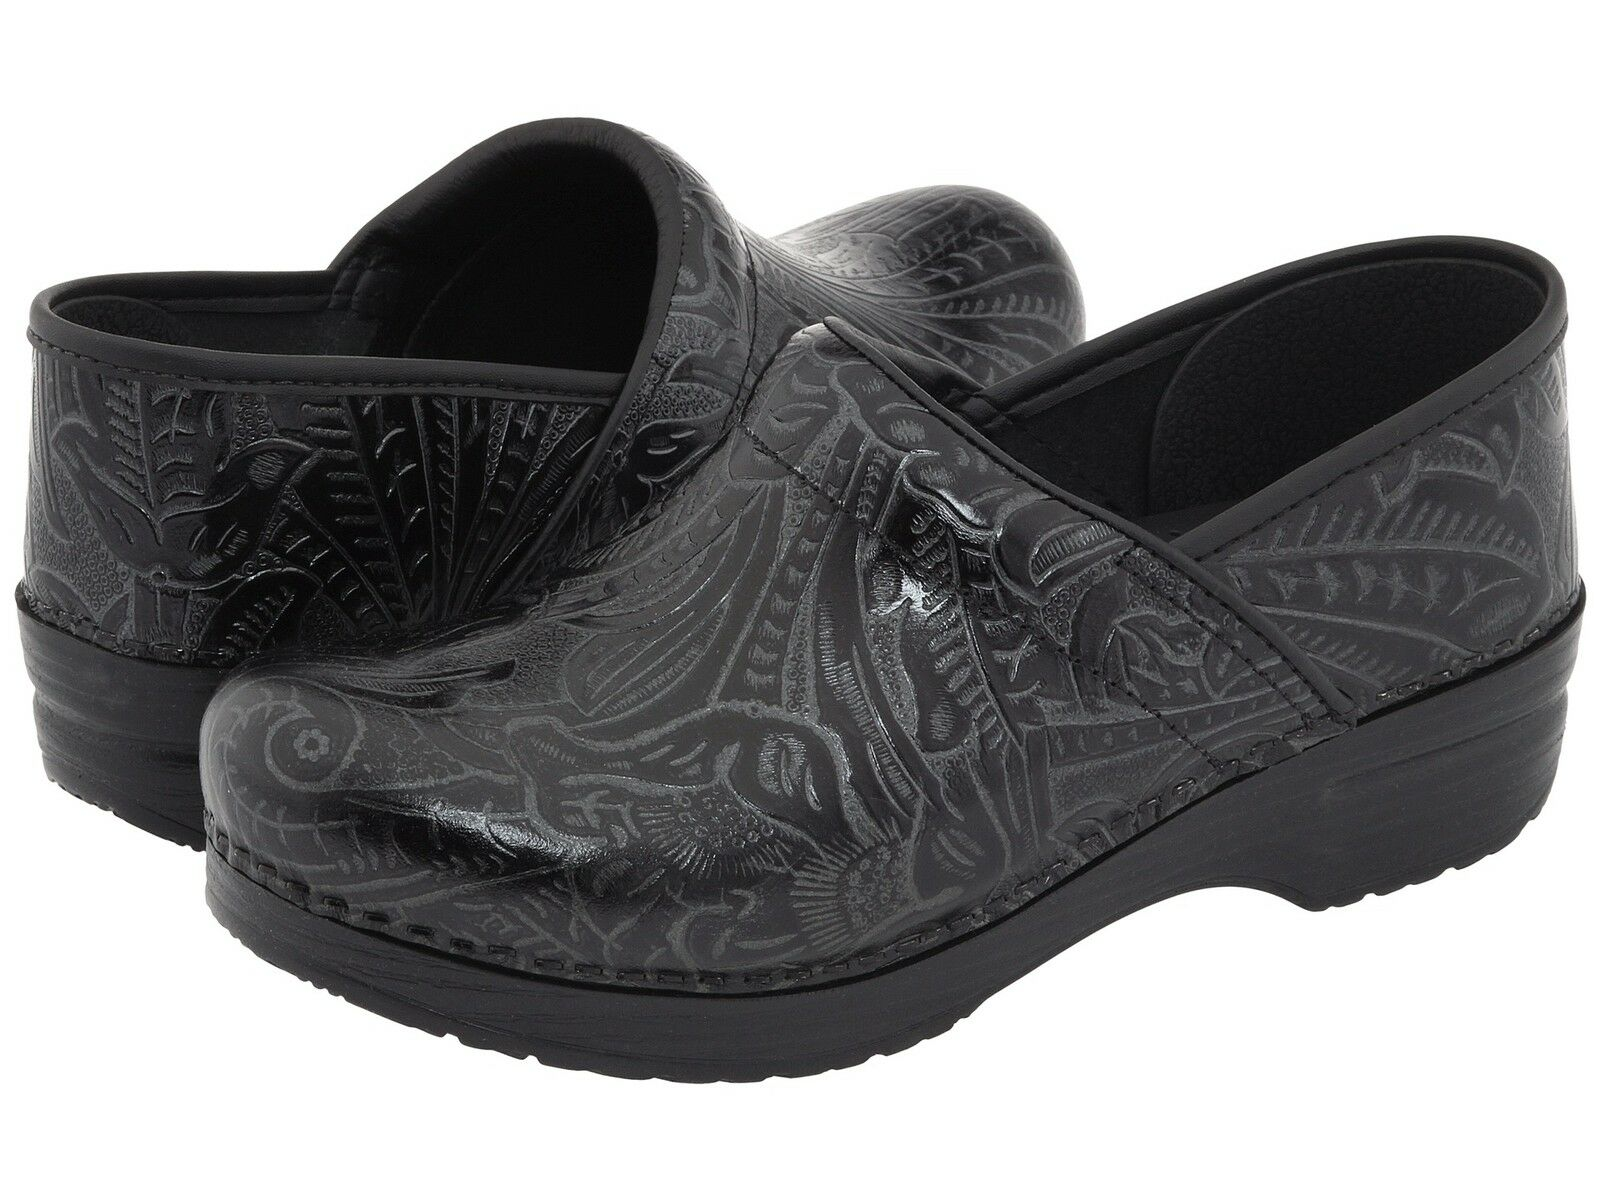 Dansko Leder PROFESSIONAL TOOLED BLACK Damenschuhe Leder Dansko Slip On Clogs Schuhes 5c0288